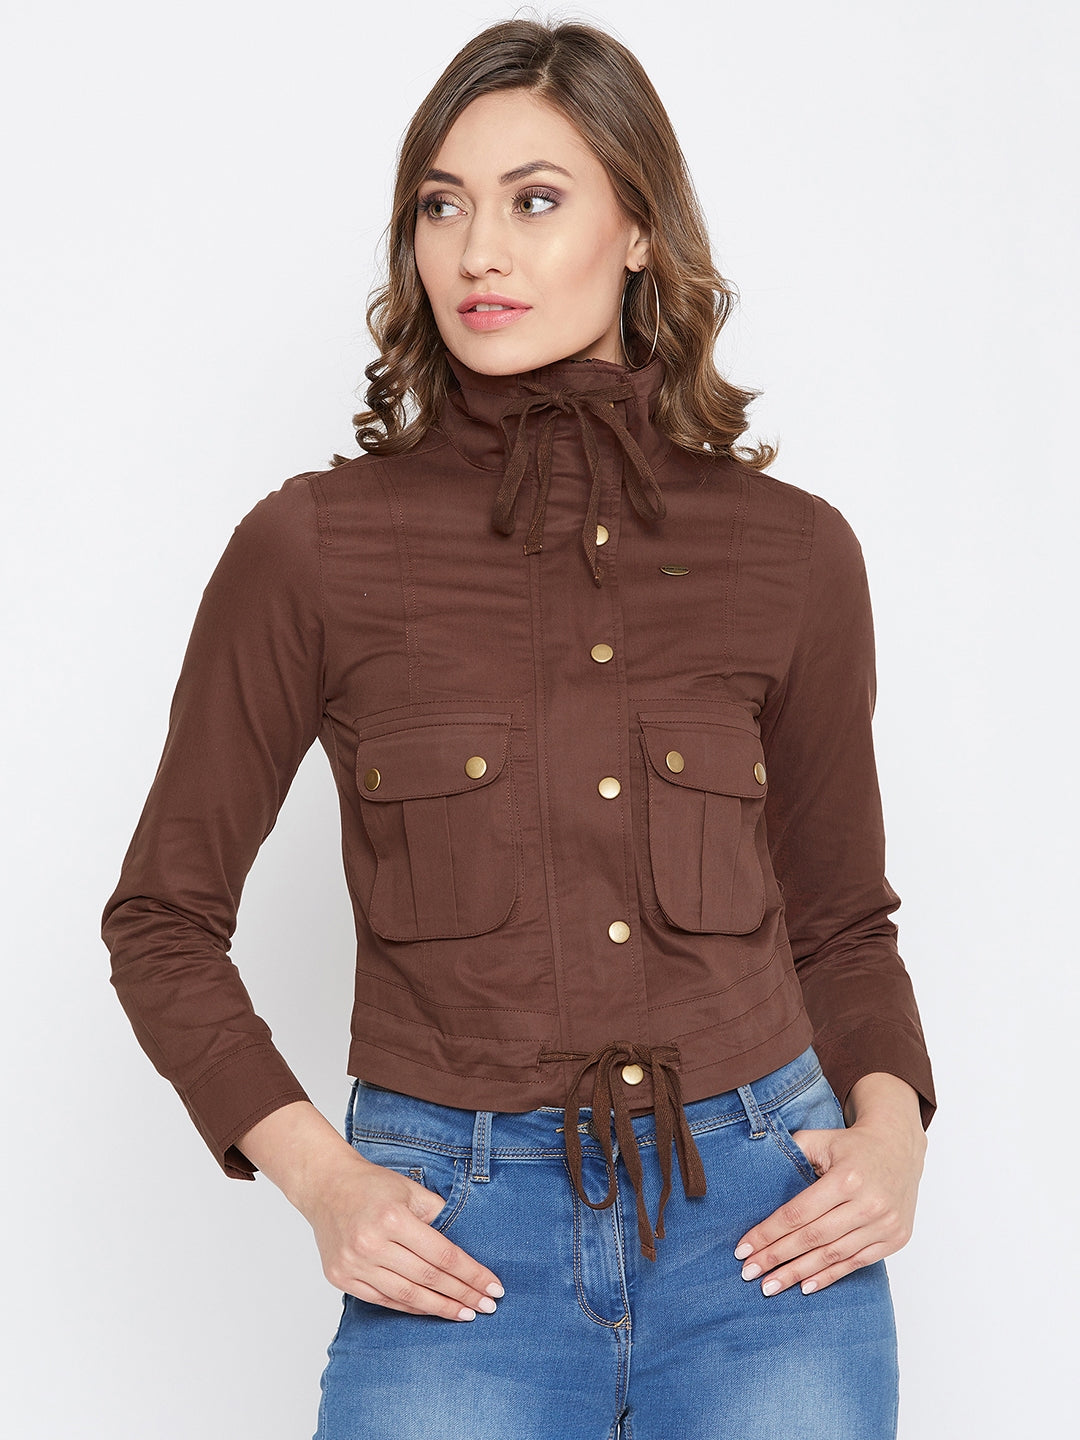 JUMP USA Women Rust Casual Tailored Jacket - JUMP USA